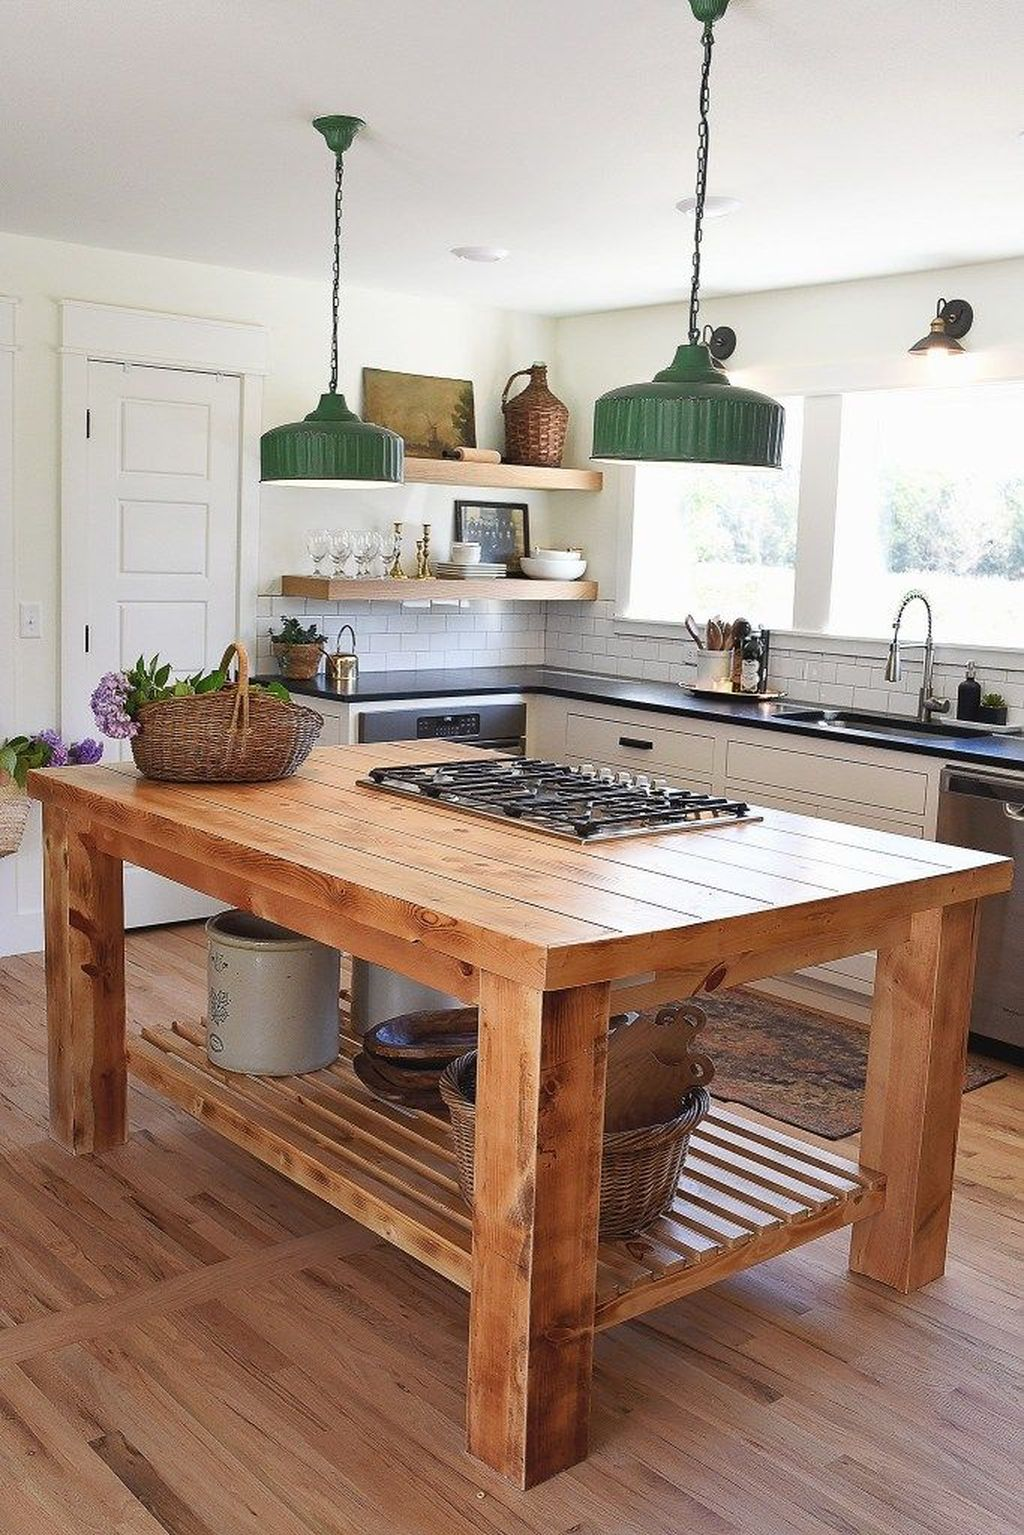 Stunning Farmhouse Kitchen Island Design Ideas 24